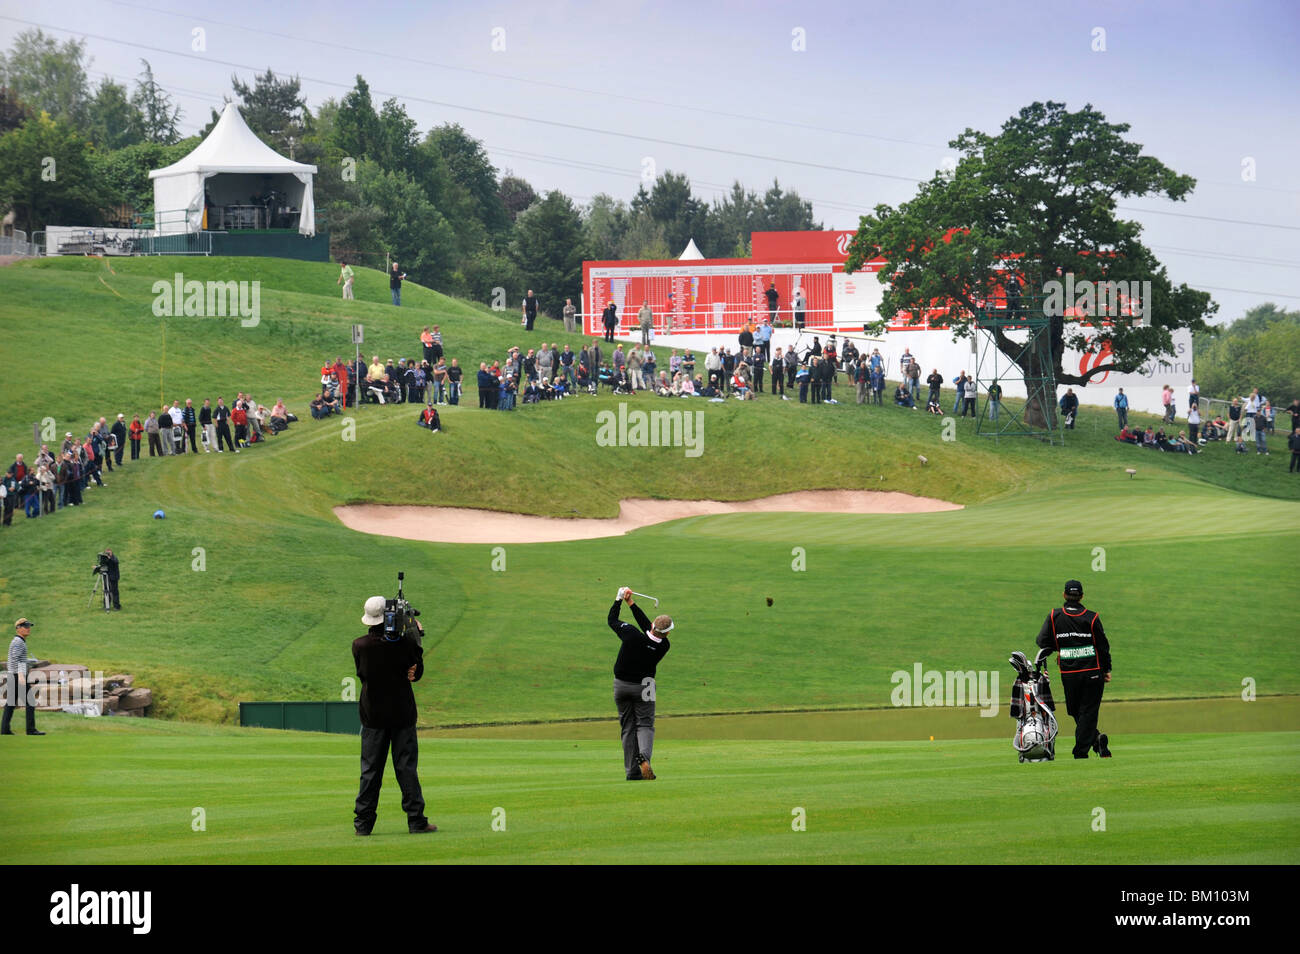 The Celtic Manor Wales Open 2008 - Colin Montgomerie hits an approach shot to the last 29 May 2008 - Stock Image